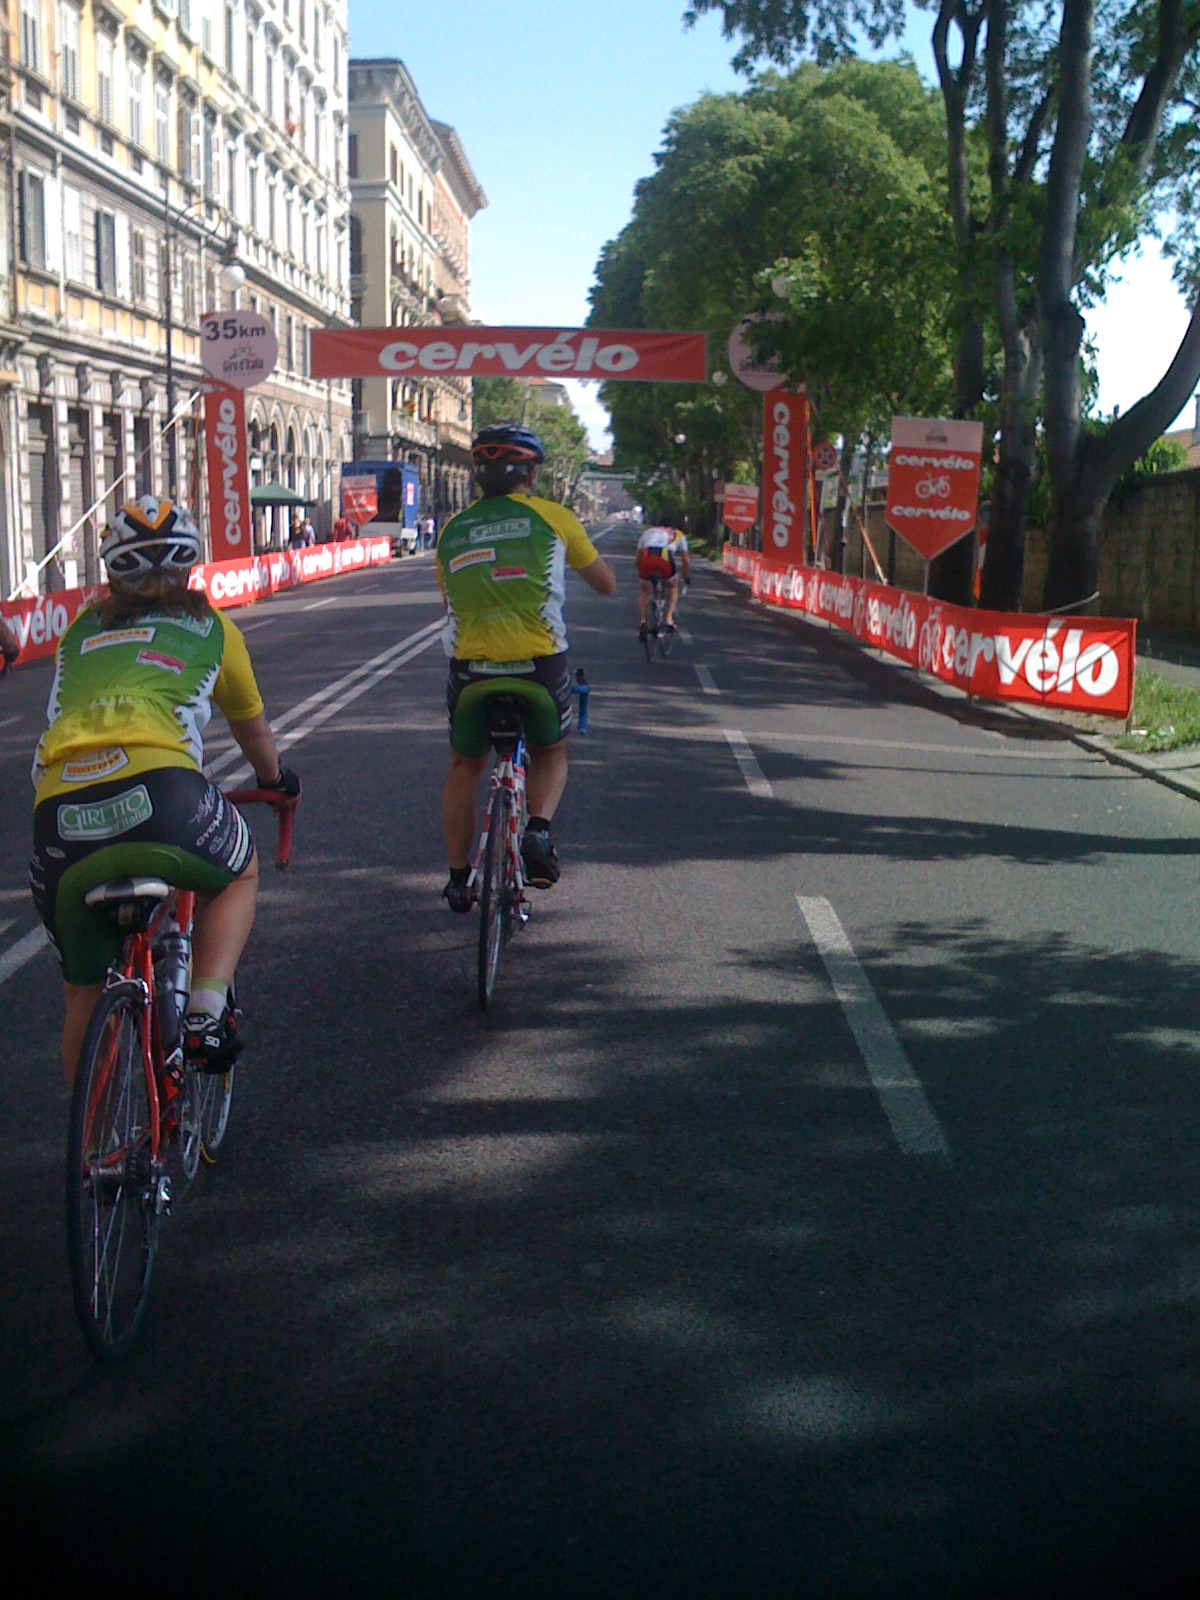 Gino and Nina entering Trieste on the race course